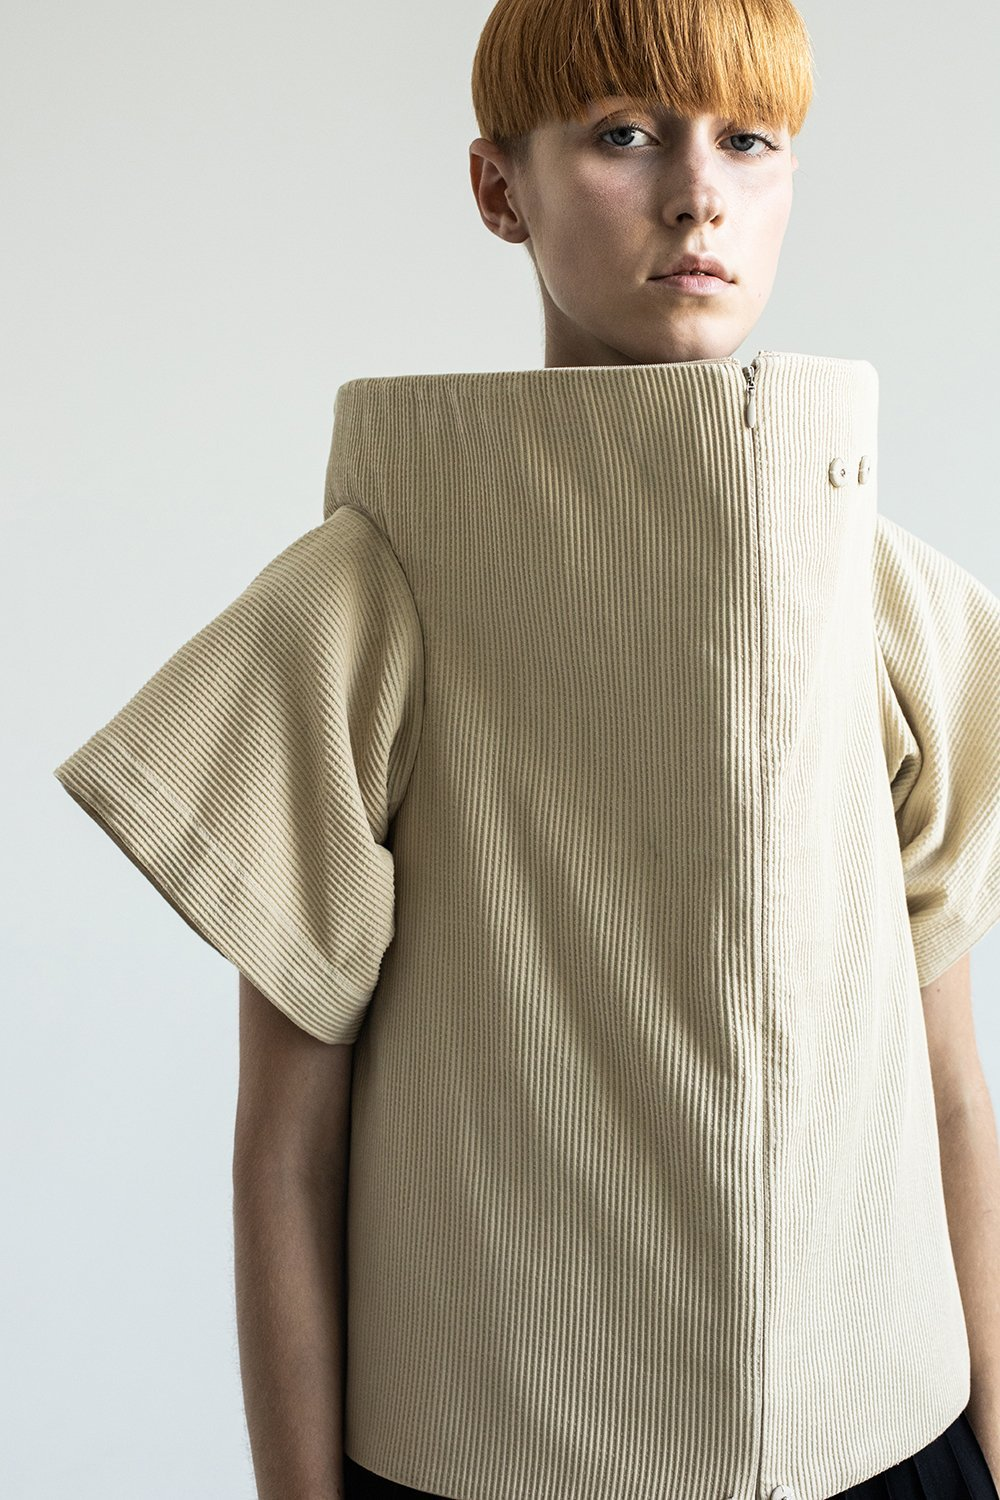 CARDBOARD 6-way Transforming Piece: Vest/Hoodie/Bag - The Clothing LoungeDZHUS